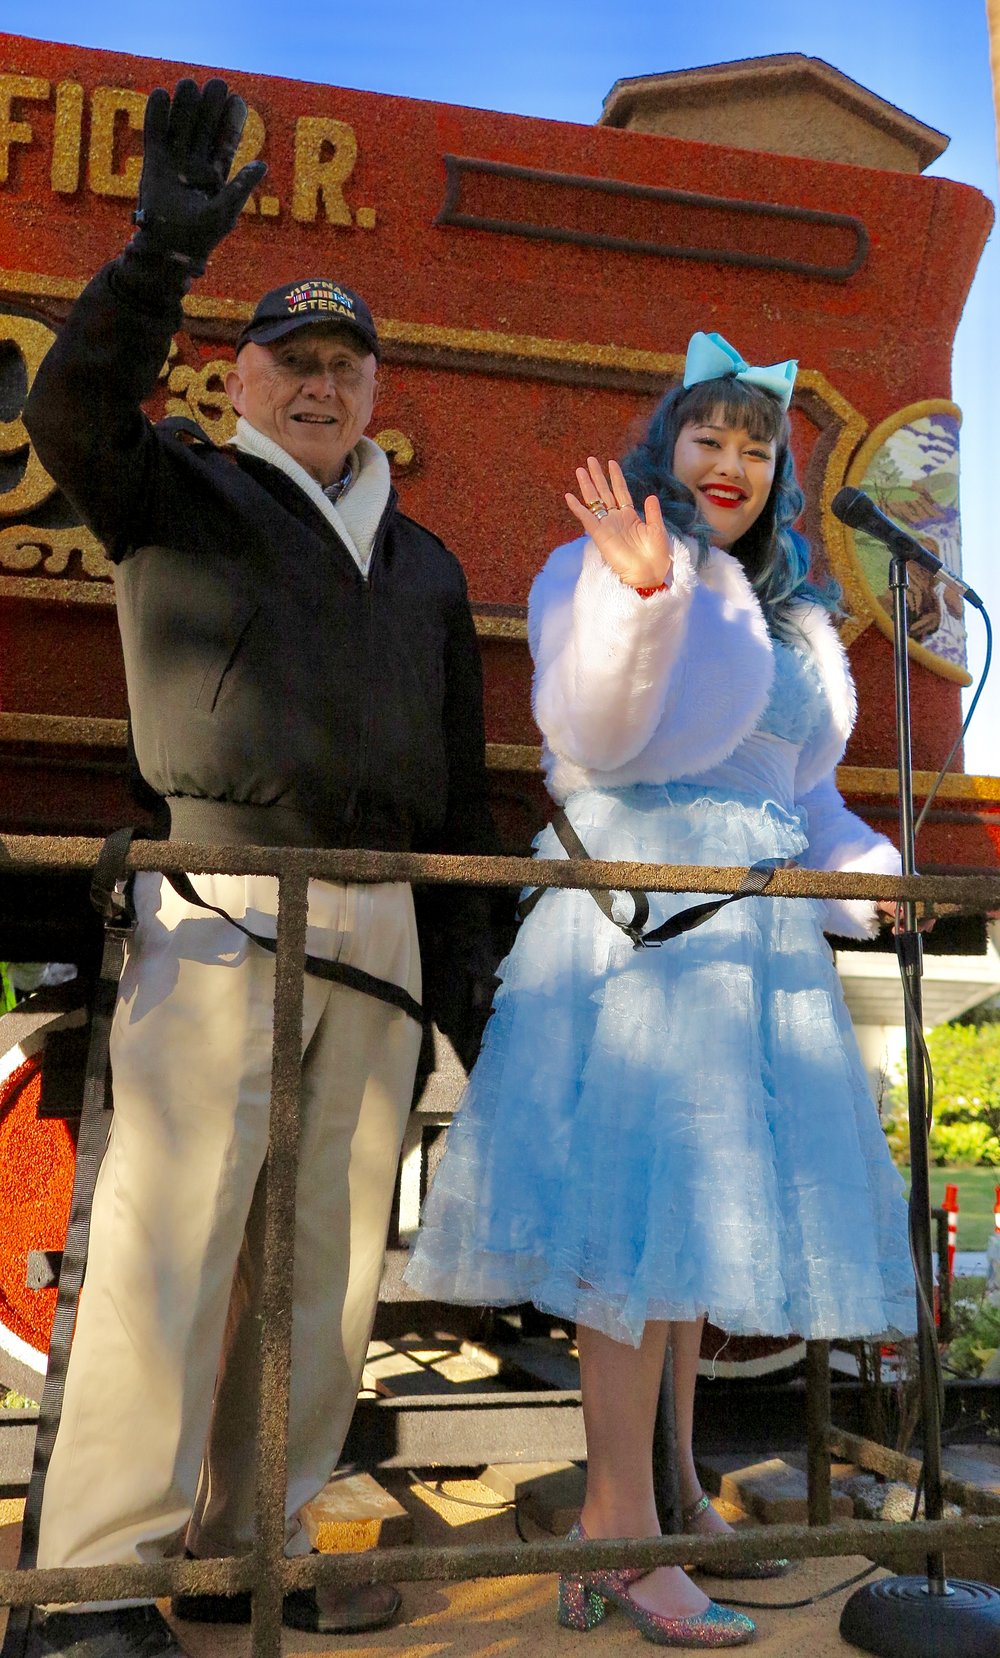 Major General Chen and Blythe Schulte wave as the float begins its journey down the parade route. All riders were safety strapped to the float.